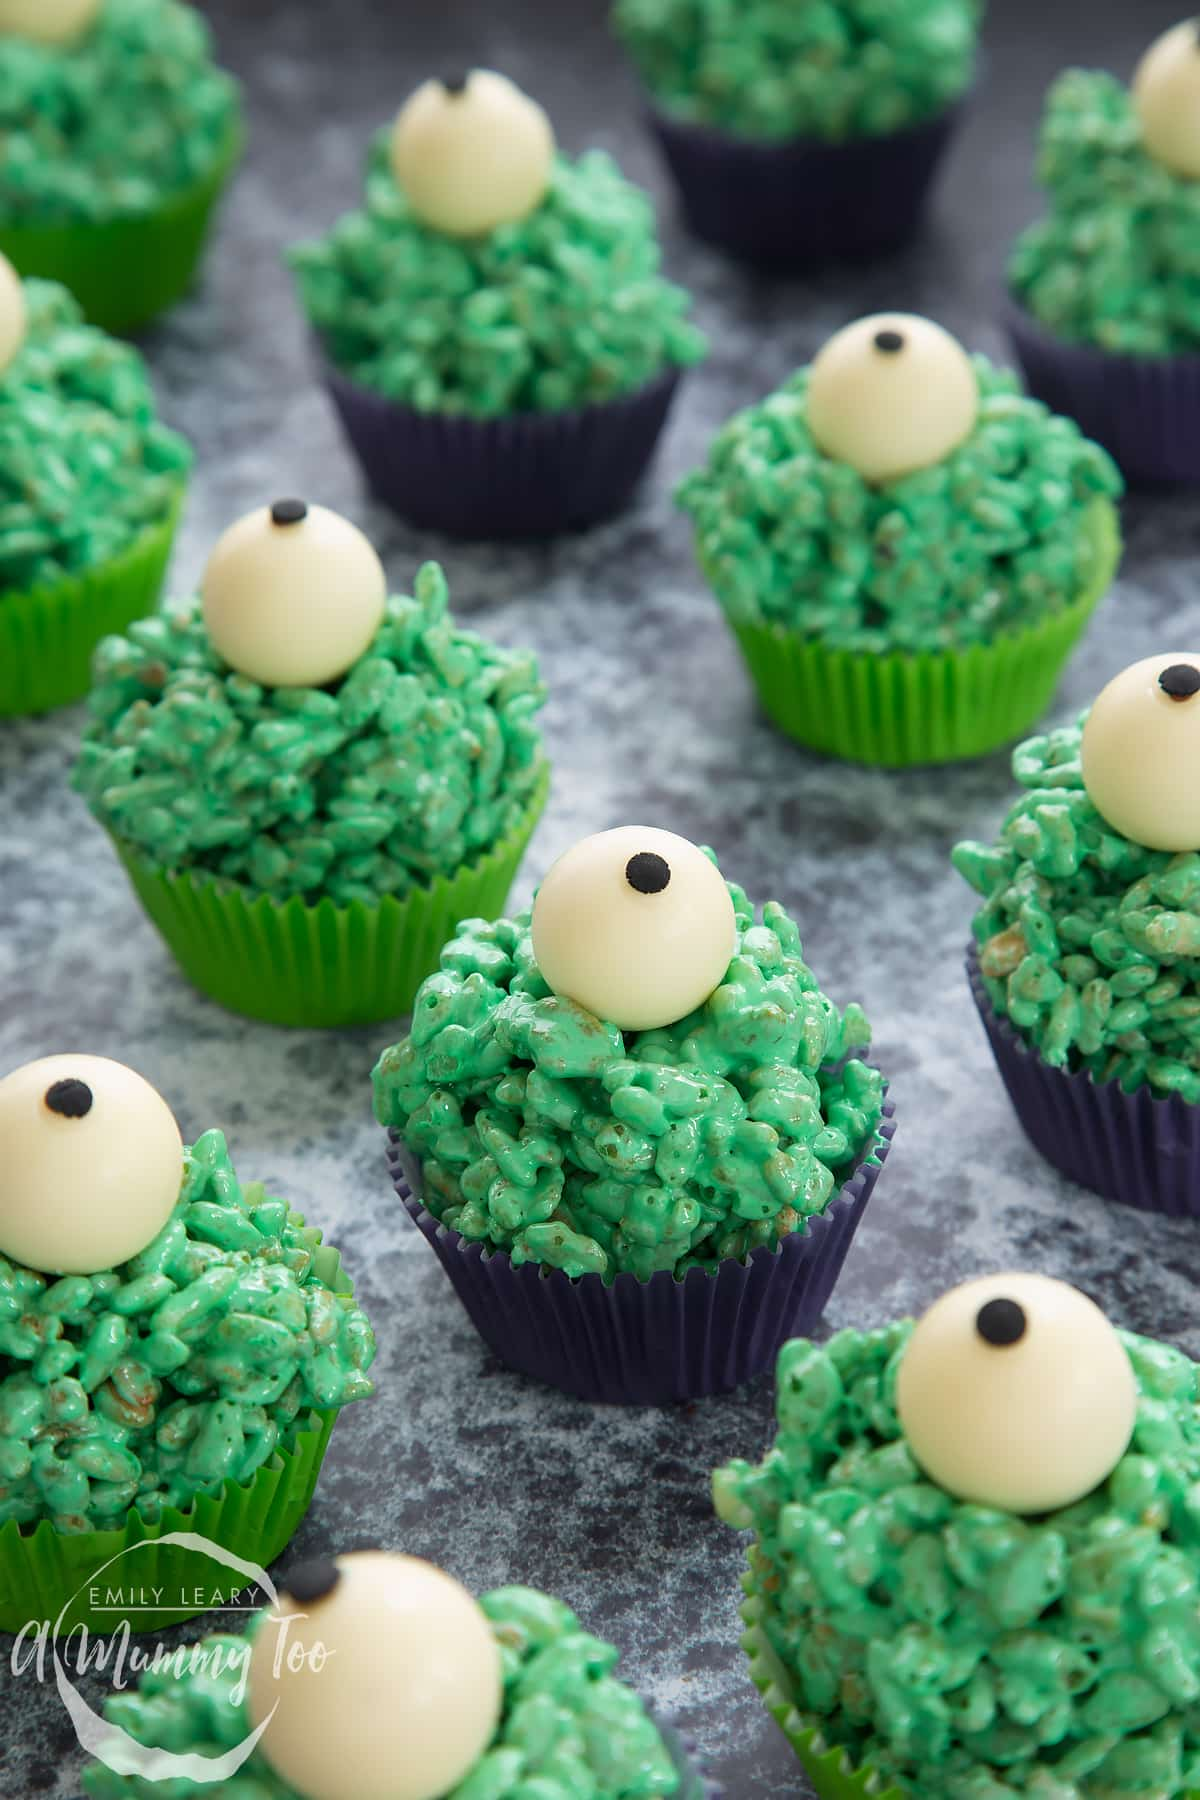 Halloween crispy cakes in purple and green cupcake cases. The crispy cakes are dyed green and topped with white chocolate spheres decorated to look like eyeballs.